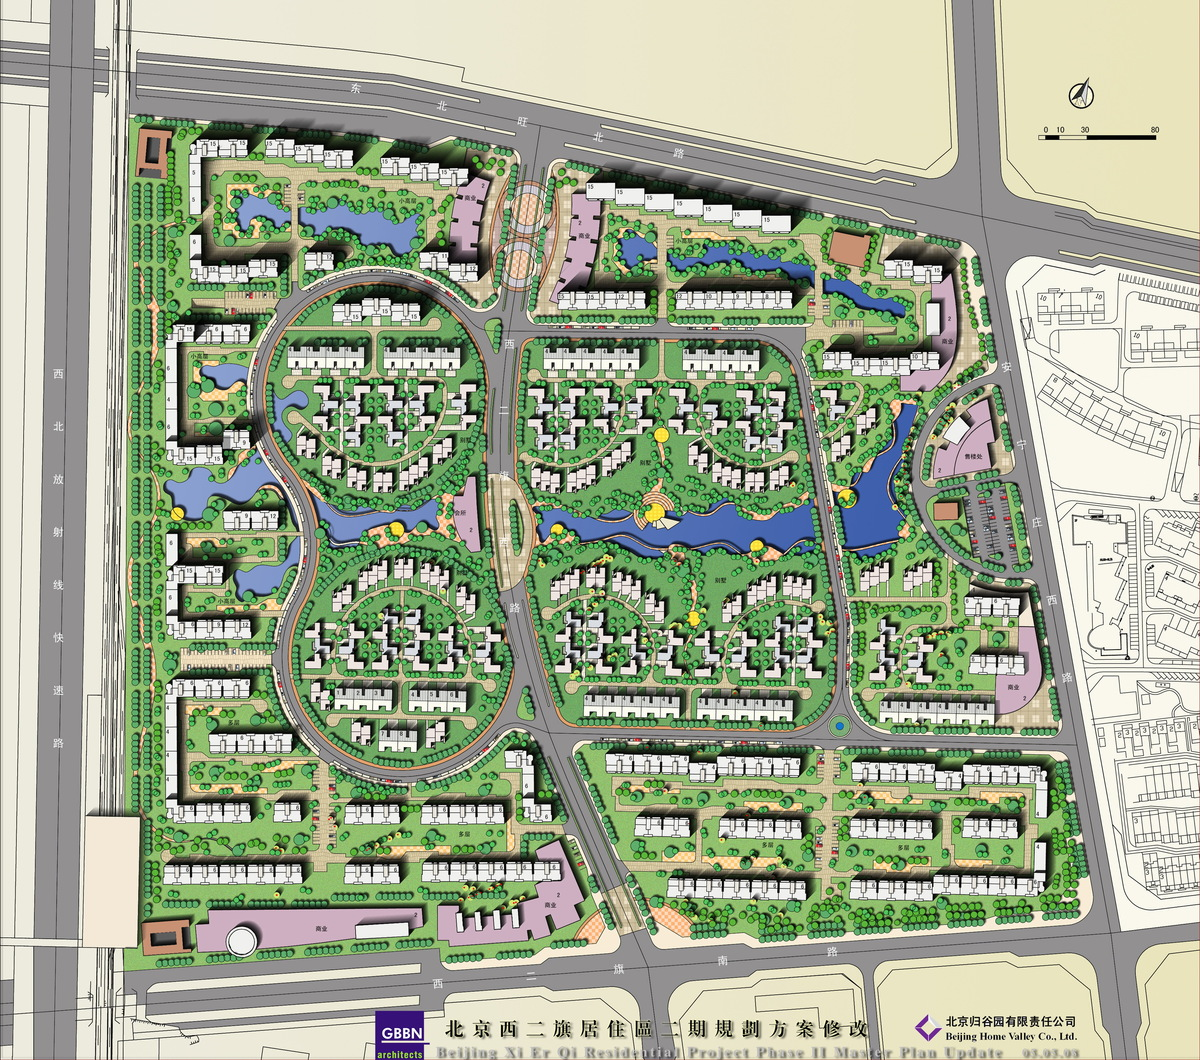 Mixed use development masterplan, Wuhan